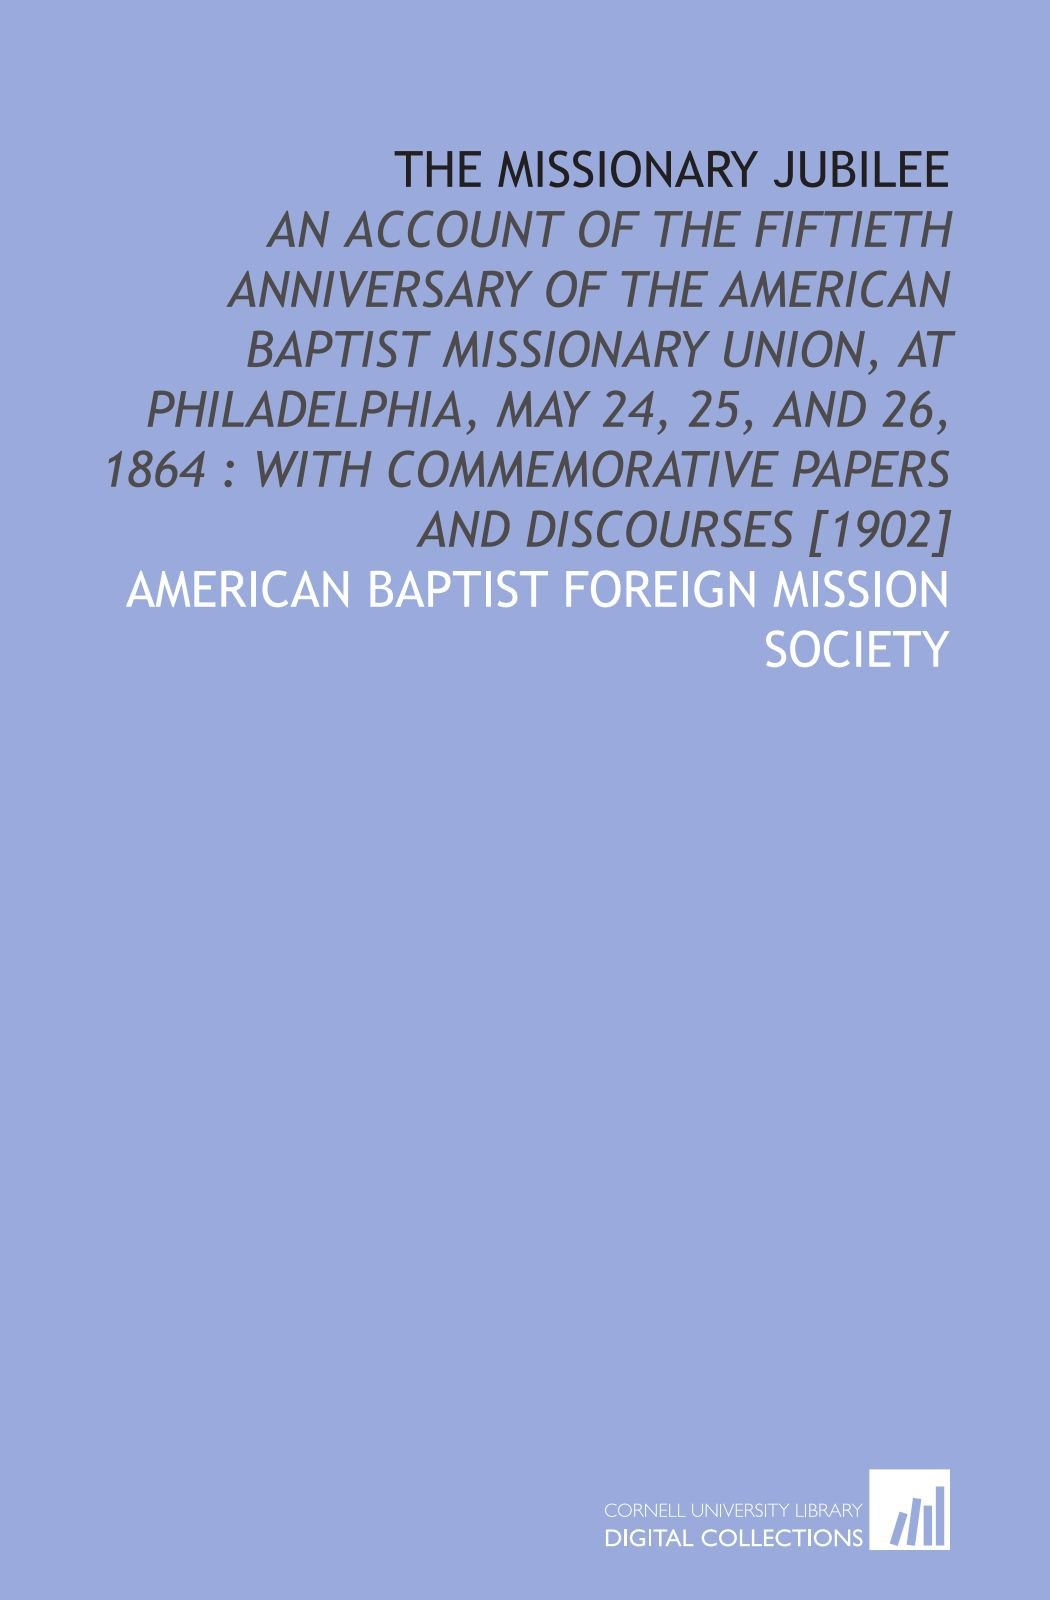 Download The missionary jubilee: an account of the fiftieth anniversary of the American Baptist Missionary Union, at Philadelphia, May 24, 25, and 26, 1864 : with commemorative papers and discourses [1902] pdf